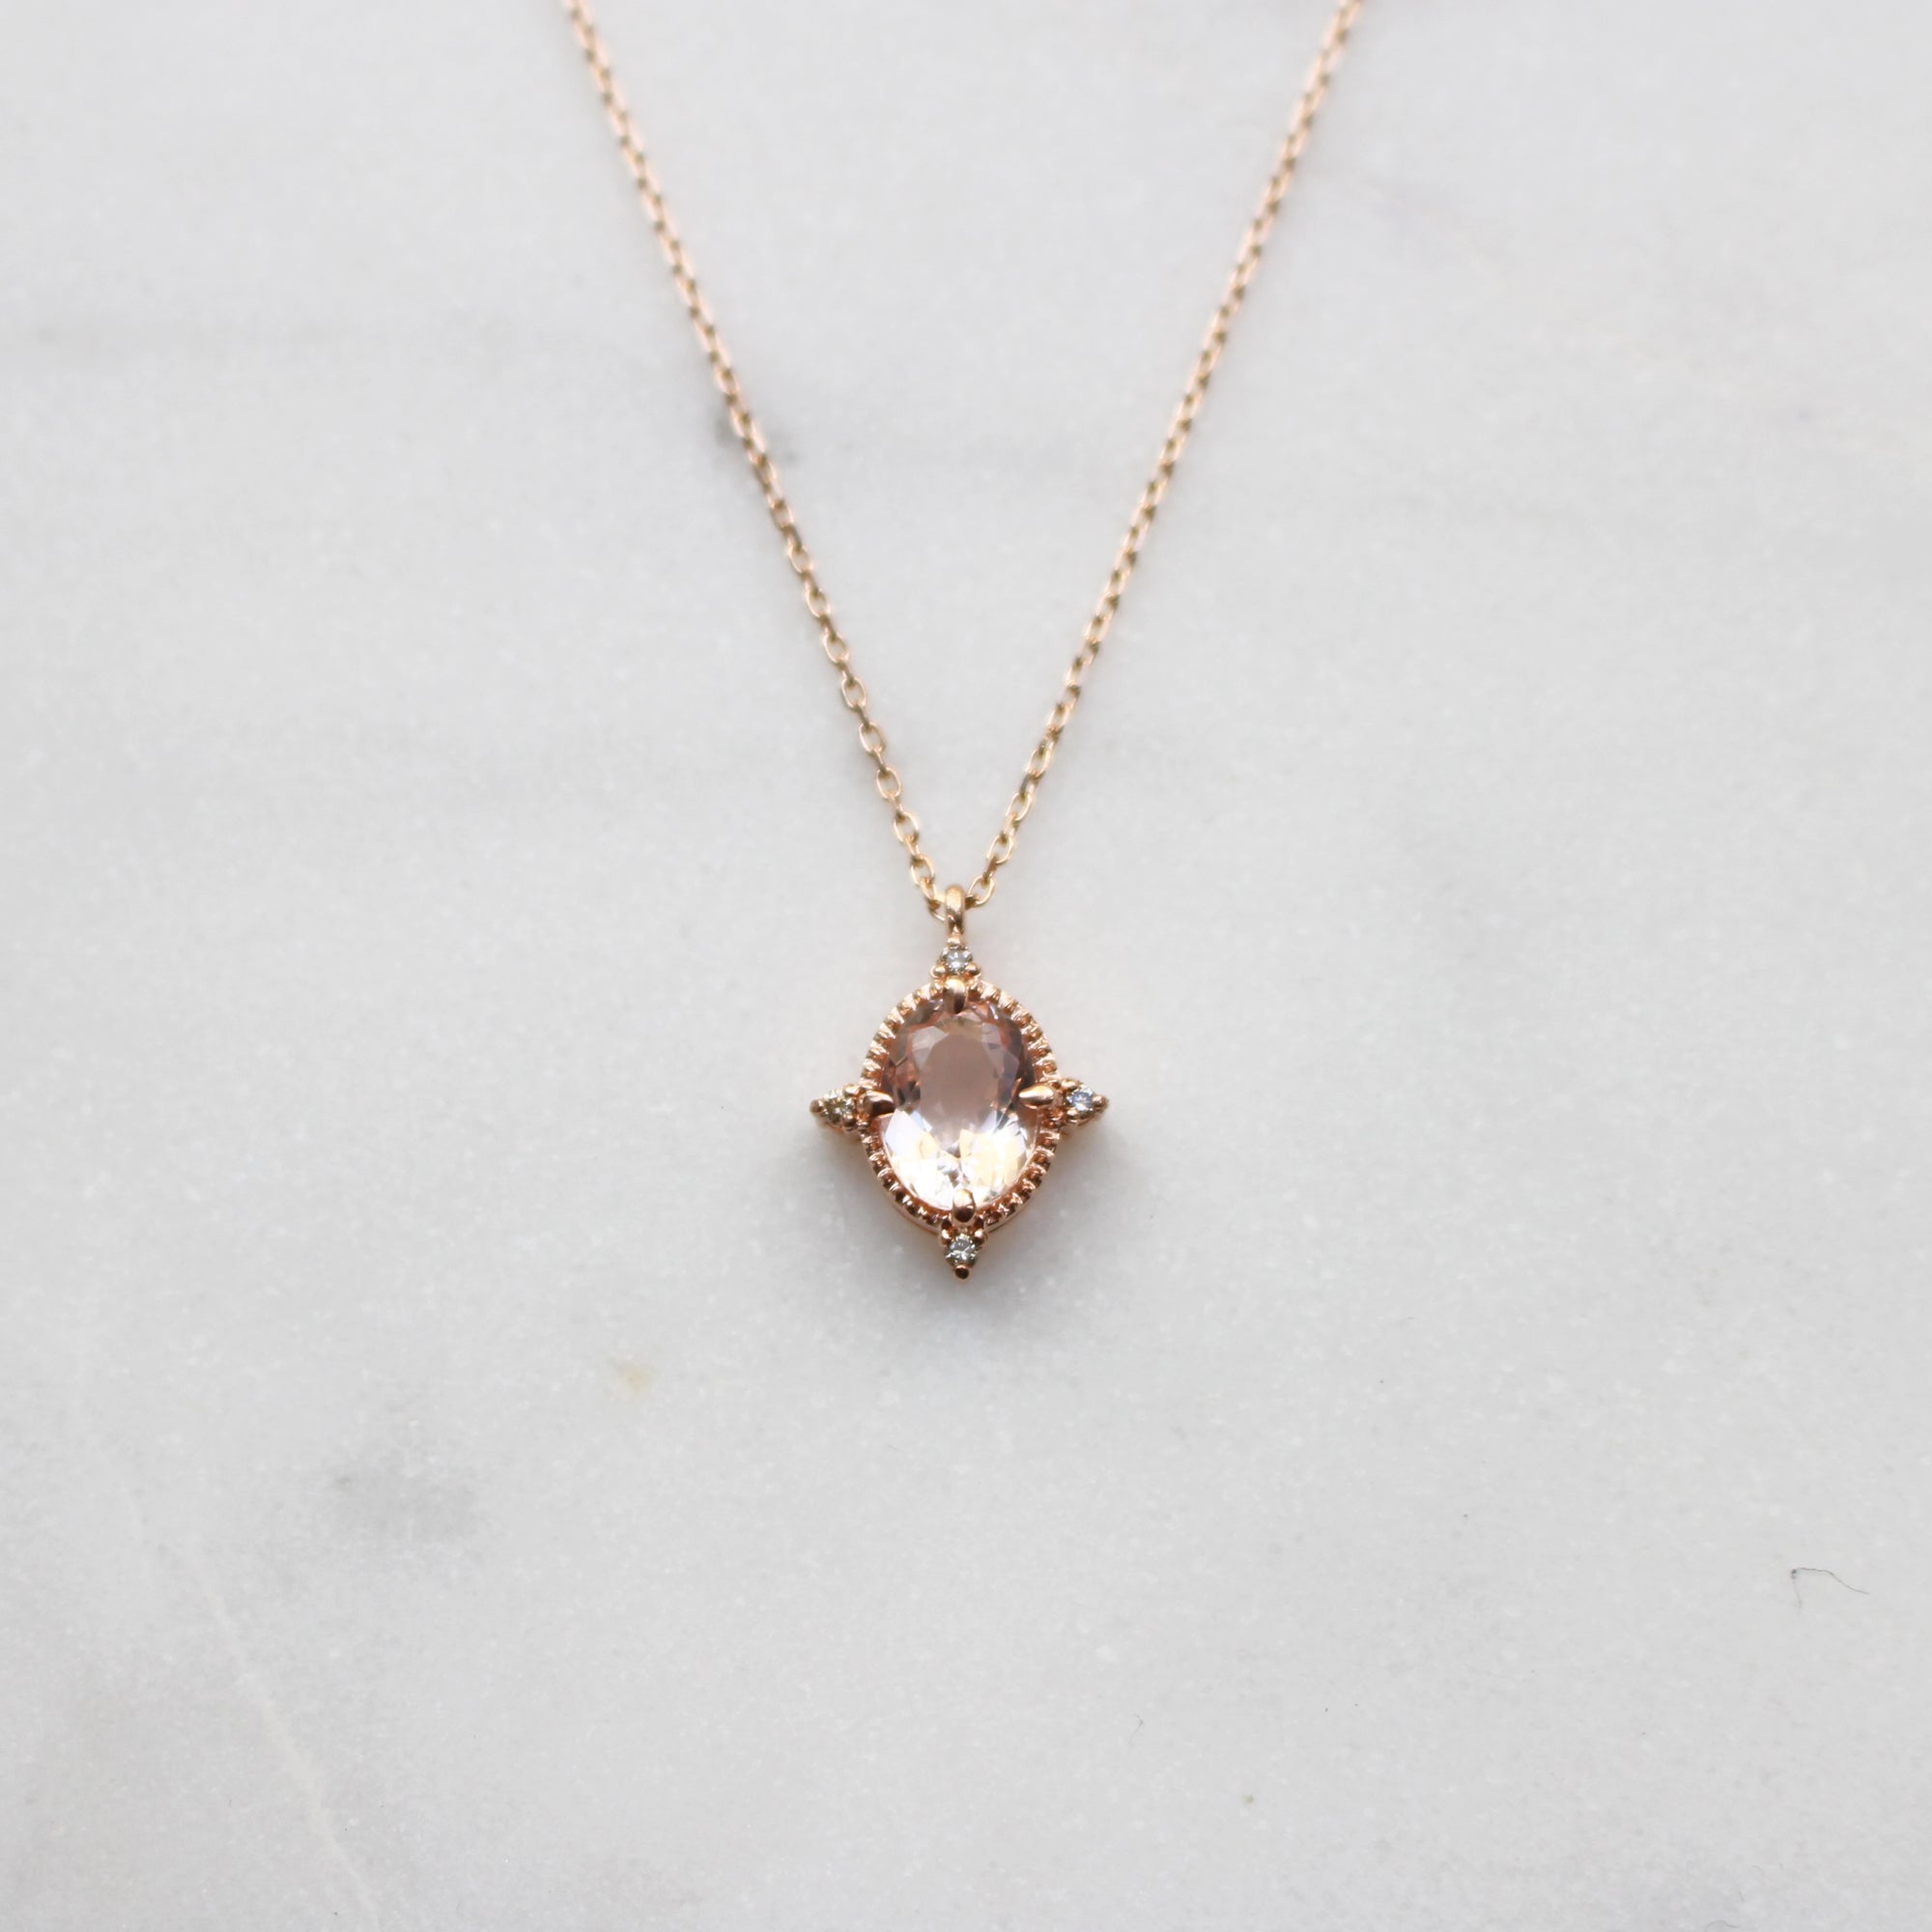 neckline pendant morganite your extra necklace pin with to this sparkle from h miadora some gold tdw rose add and diamond g